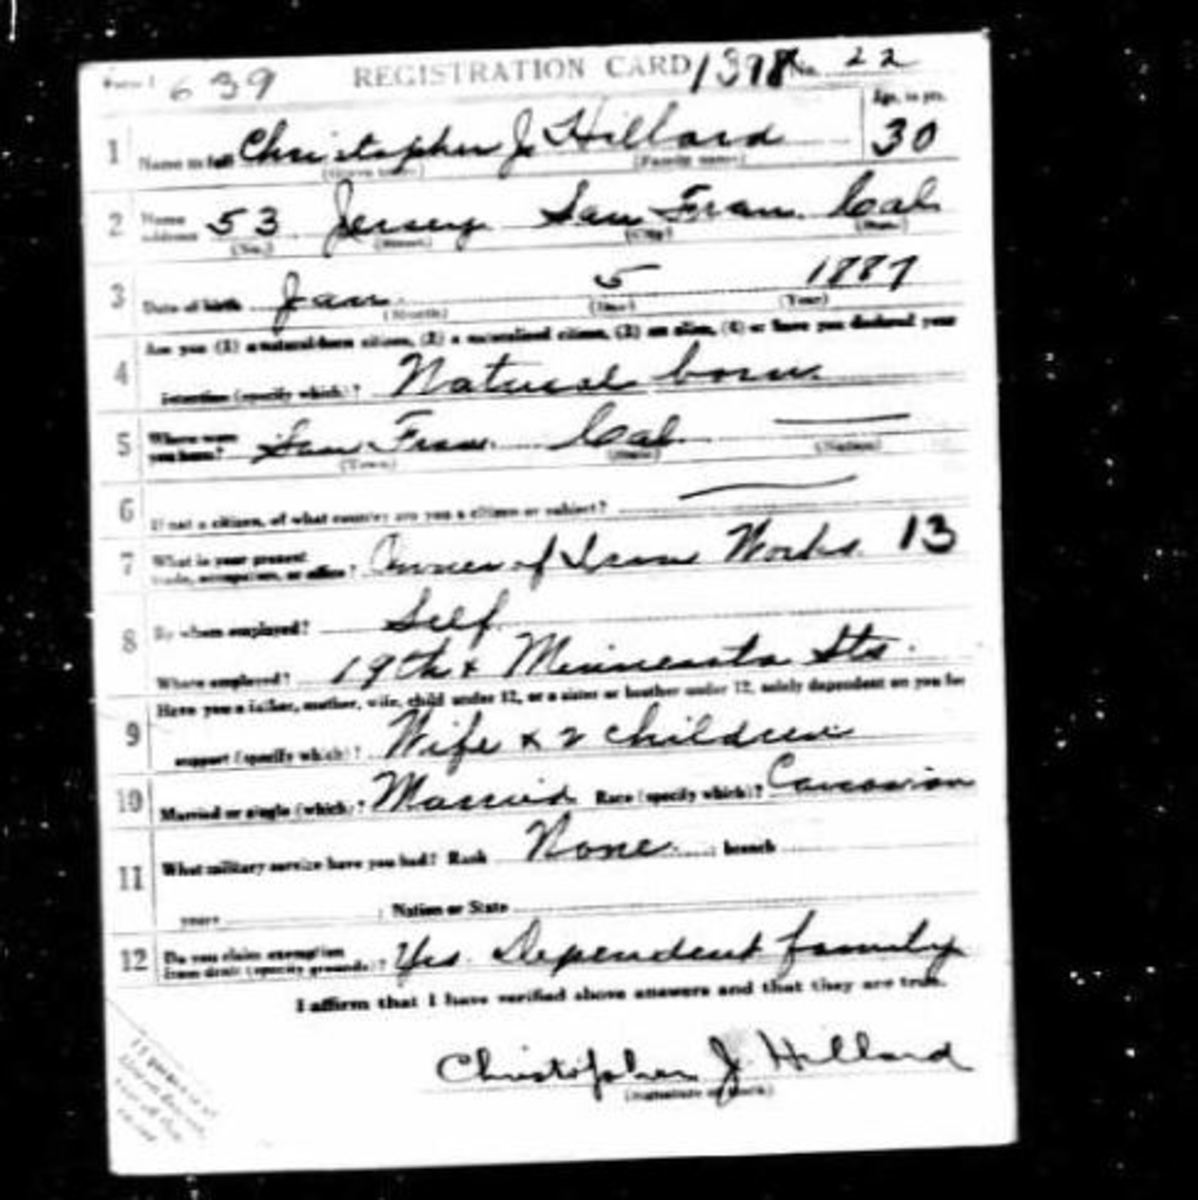 Christopher J HIllard Jr WWI Draft Card